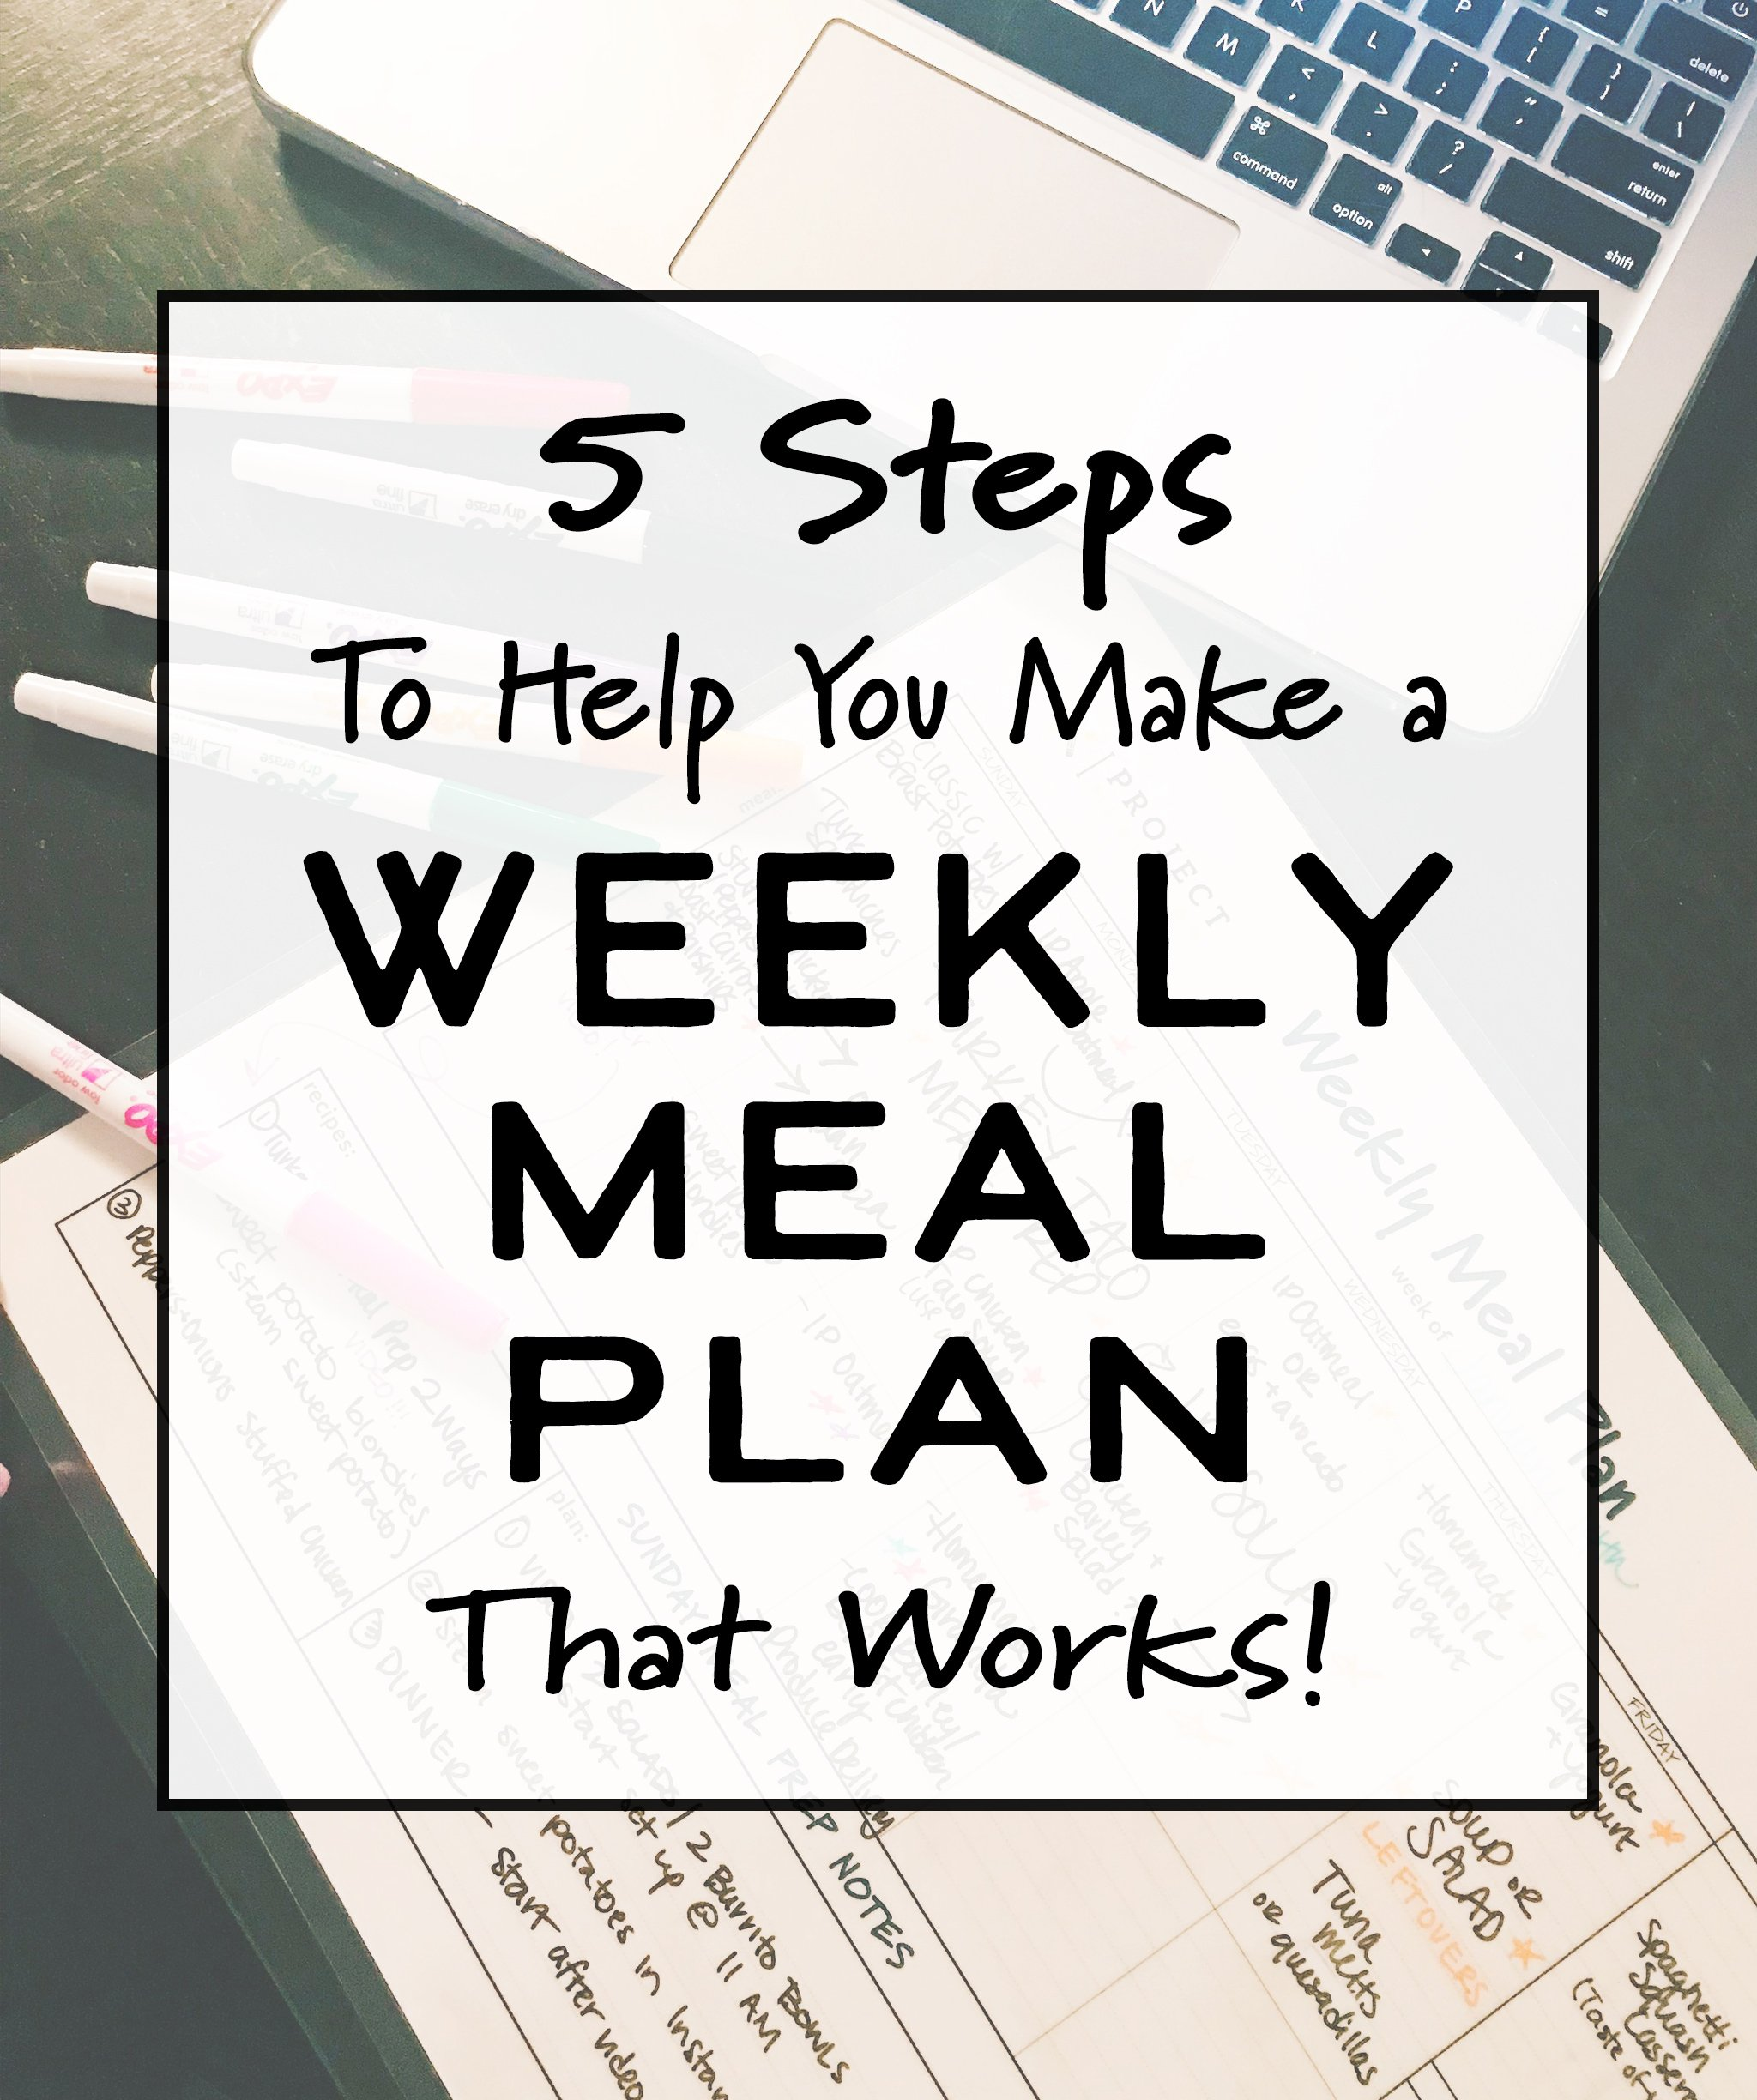 Cover photo for the article 5 Steps to Help You Make a Weekly Meal Plan That Works.